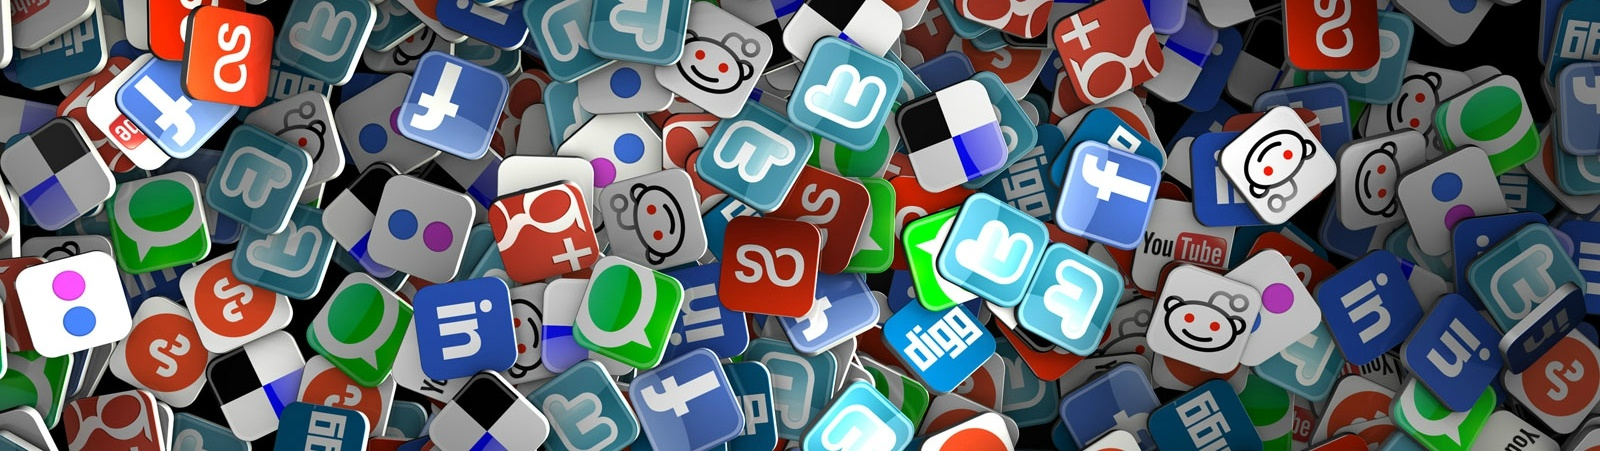 Hundreds of various social media logos in a pile.